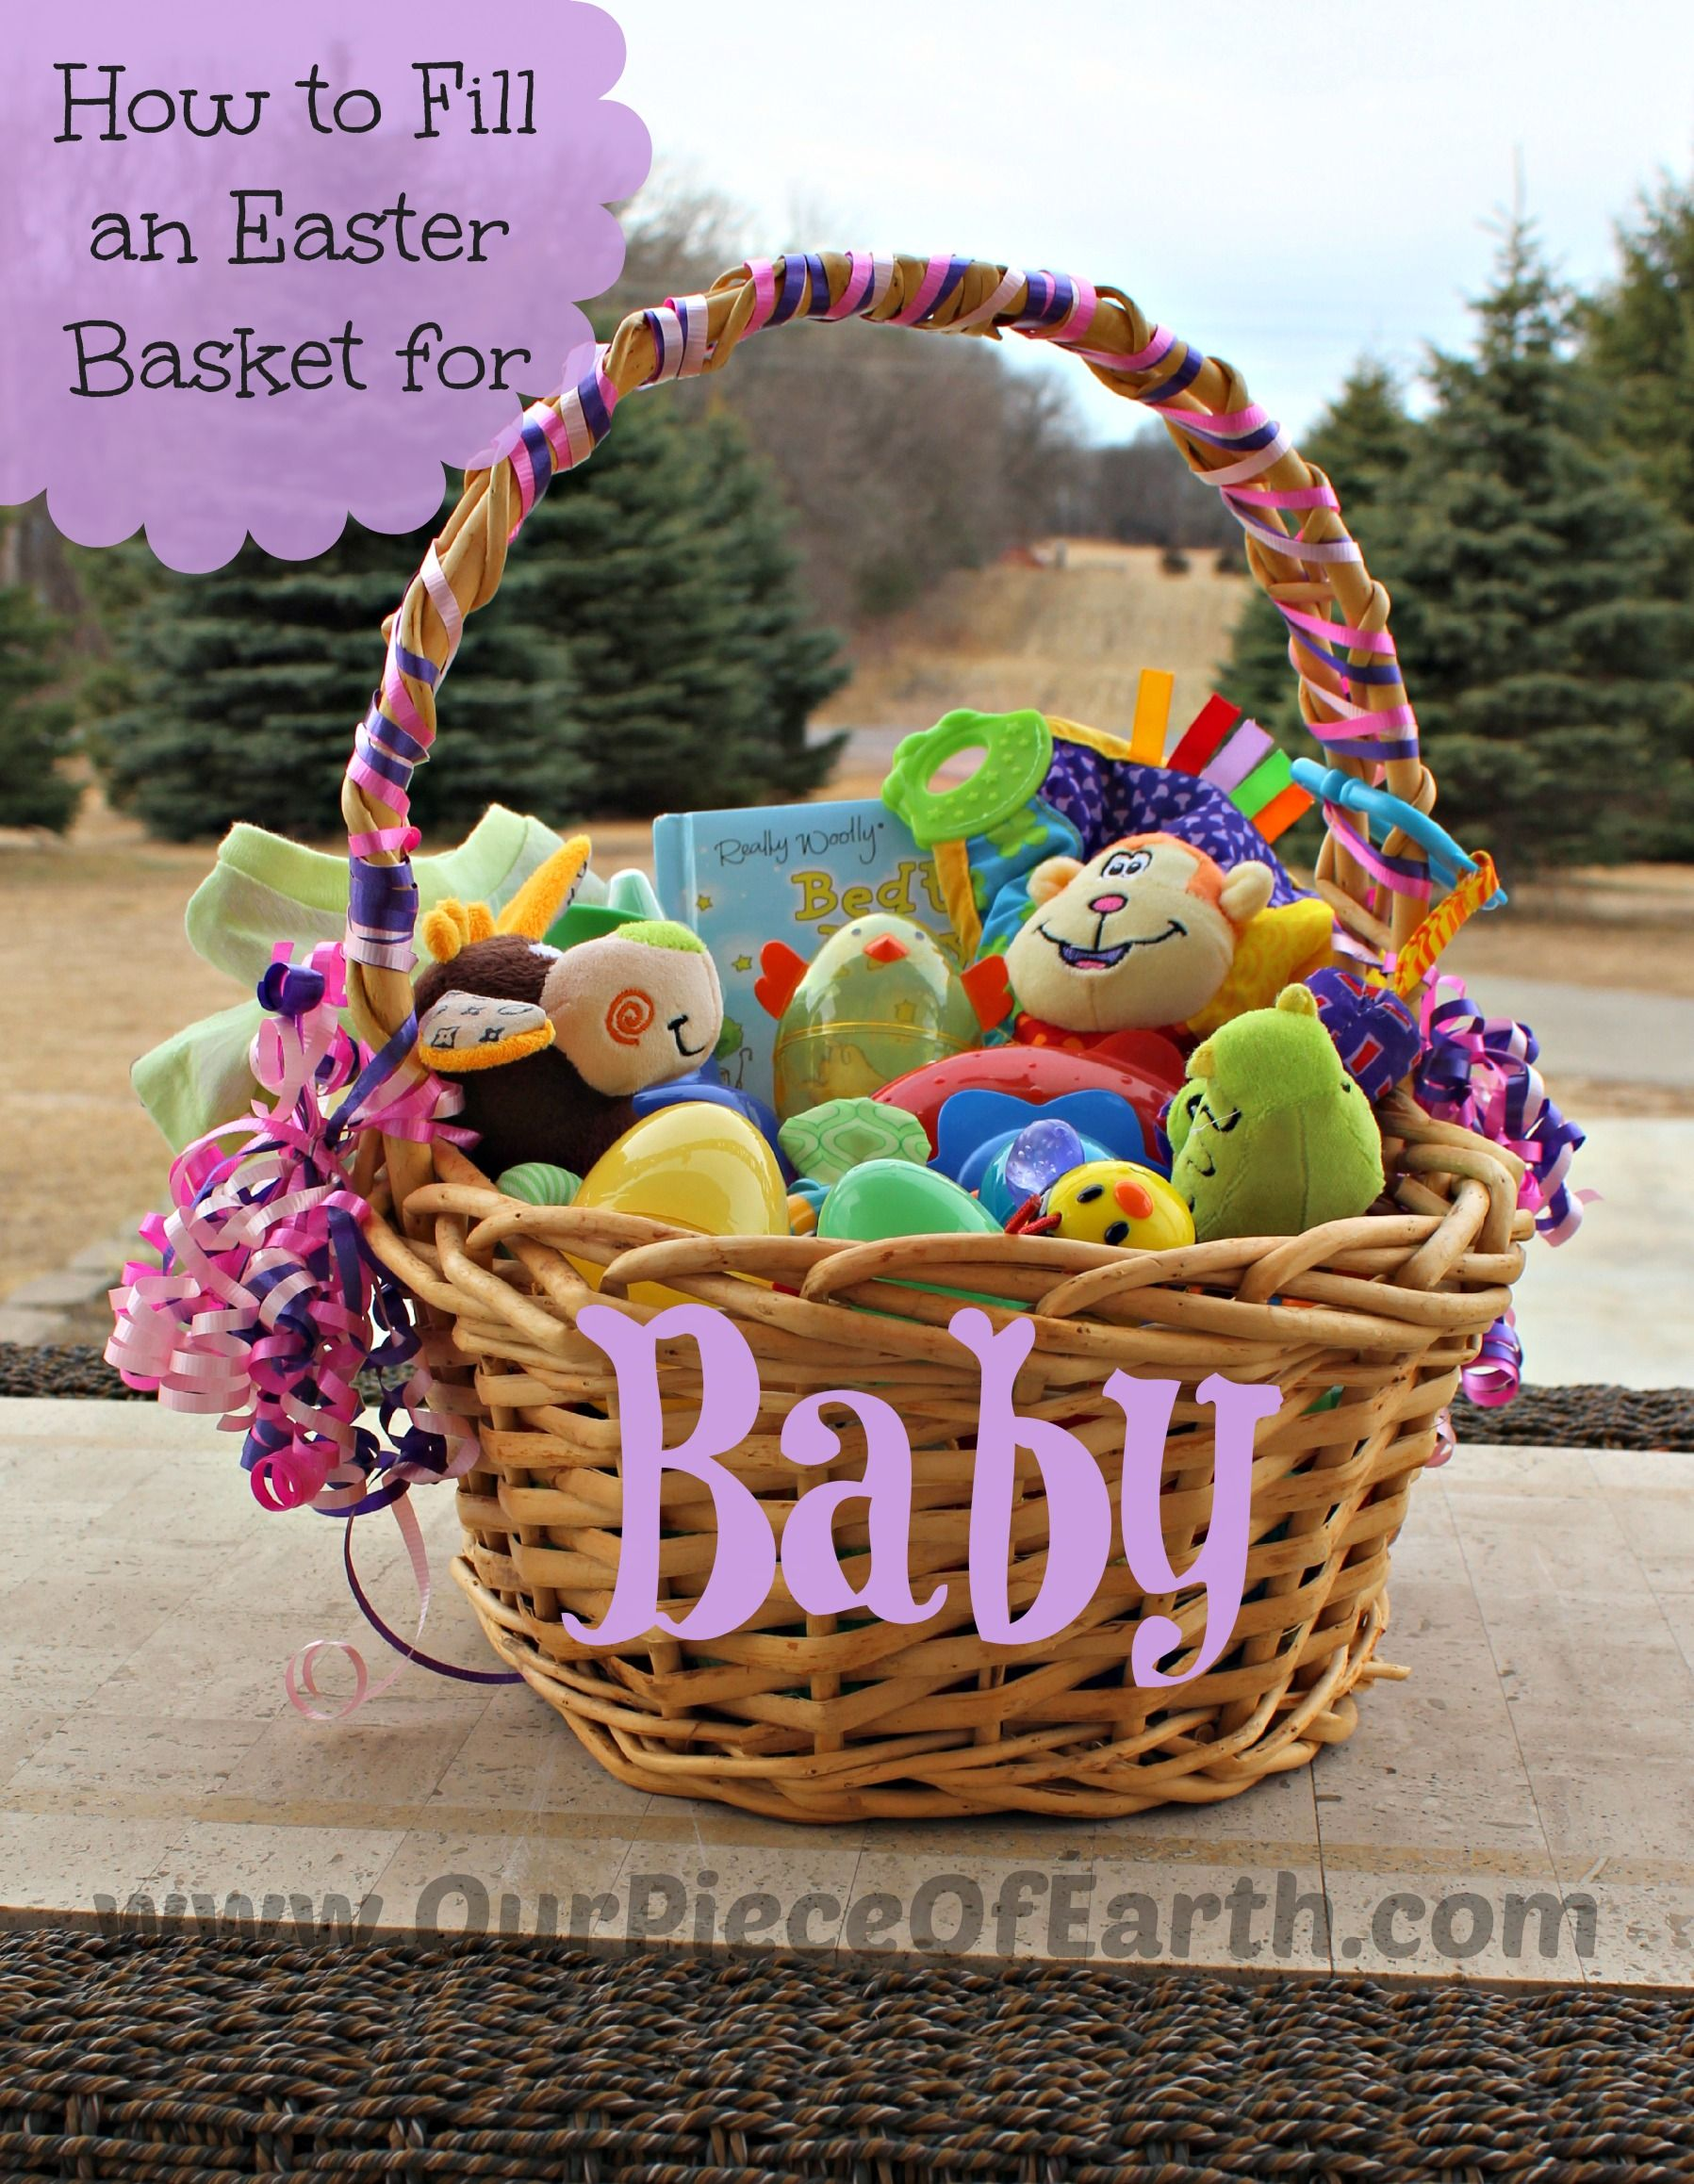 What to put in babys easter basket our piece of earth blog what to put in babys easter basket negle Image collections